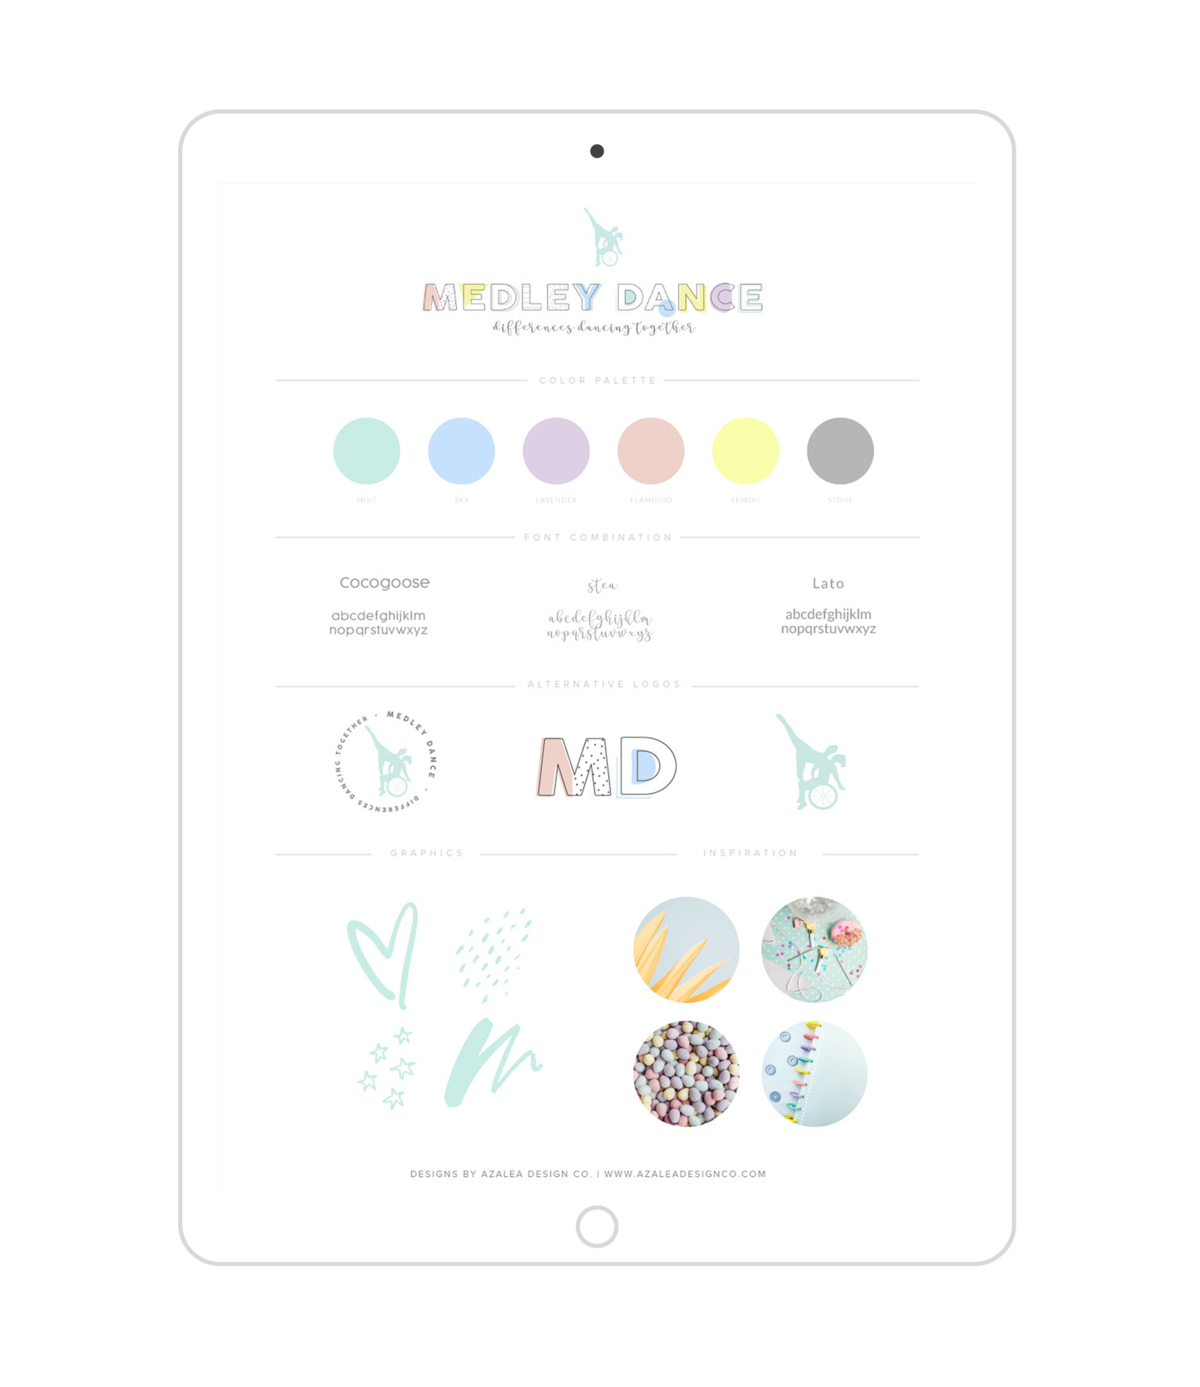 Medley Dance Branding on iPad screen